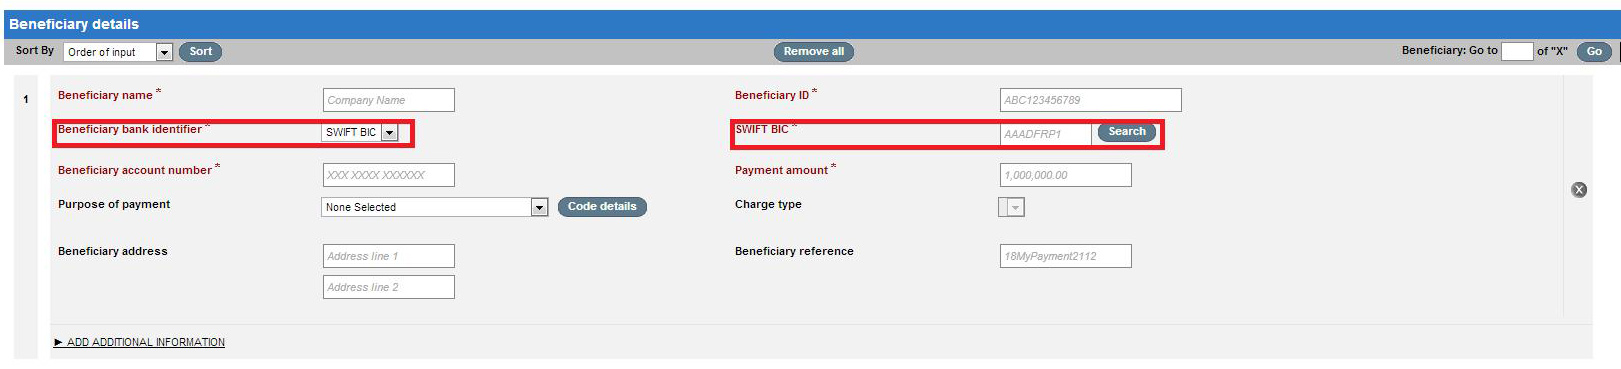 file upload via hsbcnet - file upload status monitoring - reports and files download - approve & release all payments via hsbcnet & dbs ideal  oracle system .